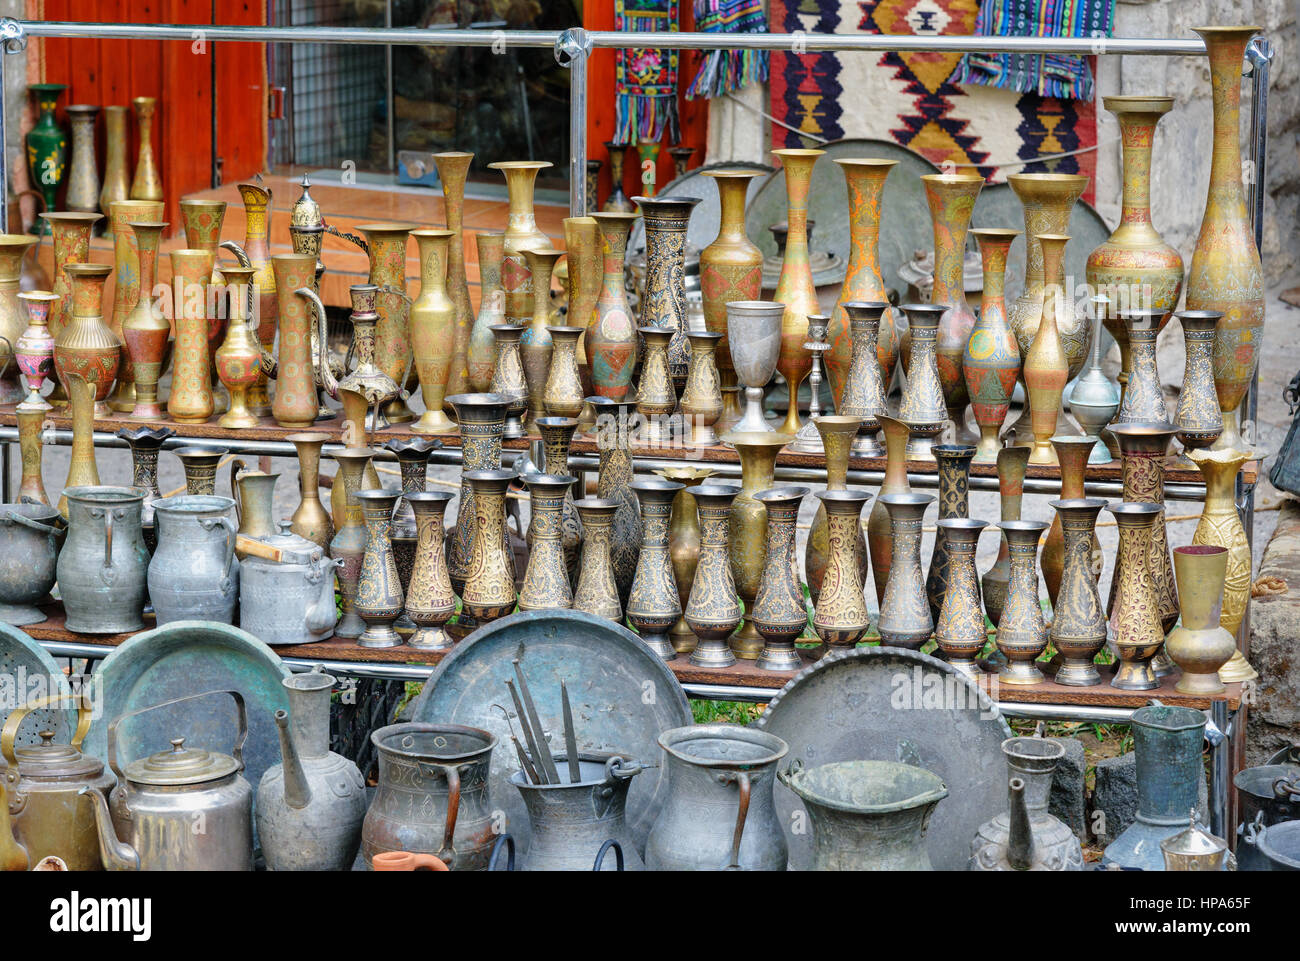 Old oriental antiques jungs and vases on street market in Old city, Icheri Sheher. Baku, Azerbaijan. - Stock Image